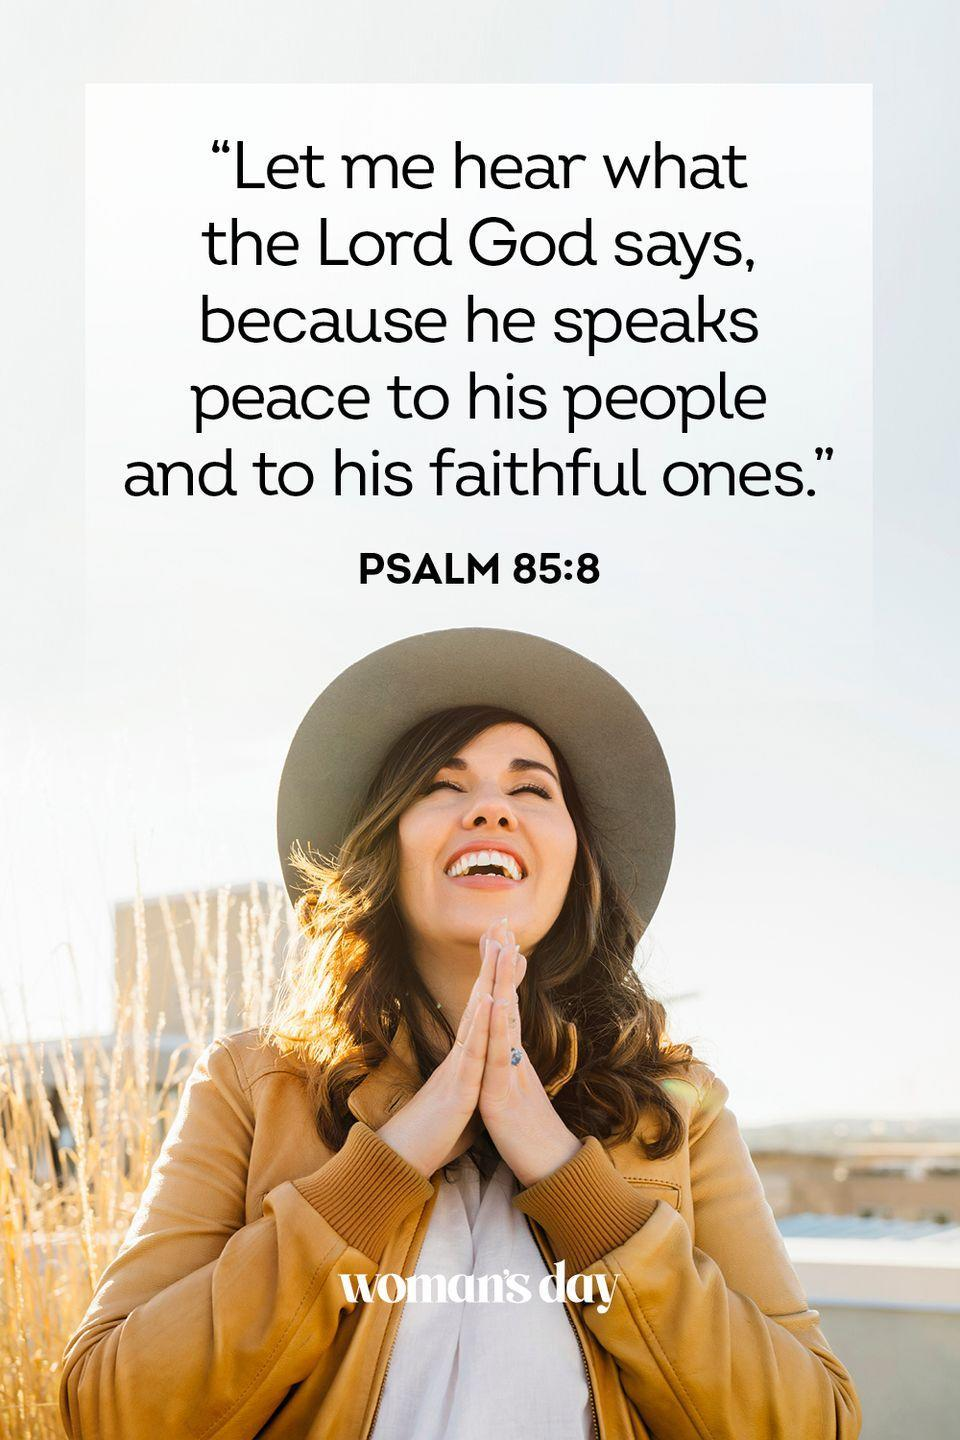 """<p>""""Let me hear what the Lord God says, because he speaks peace to his people and to his faithful ones."""" — Psalm 85:8</p><p><strong>The Good News</strong>: When in doubt, pray and read the Lord's word. What He says will always help bring about peace in your life. </p>"""